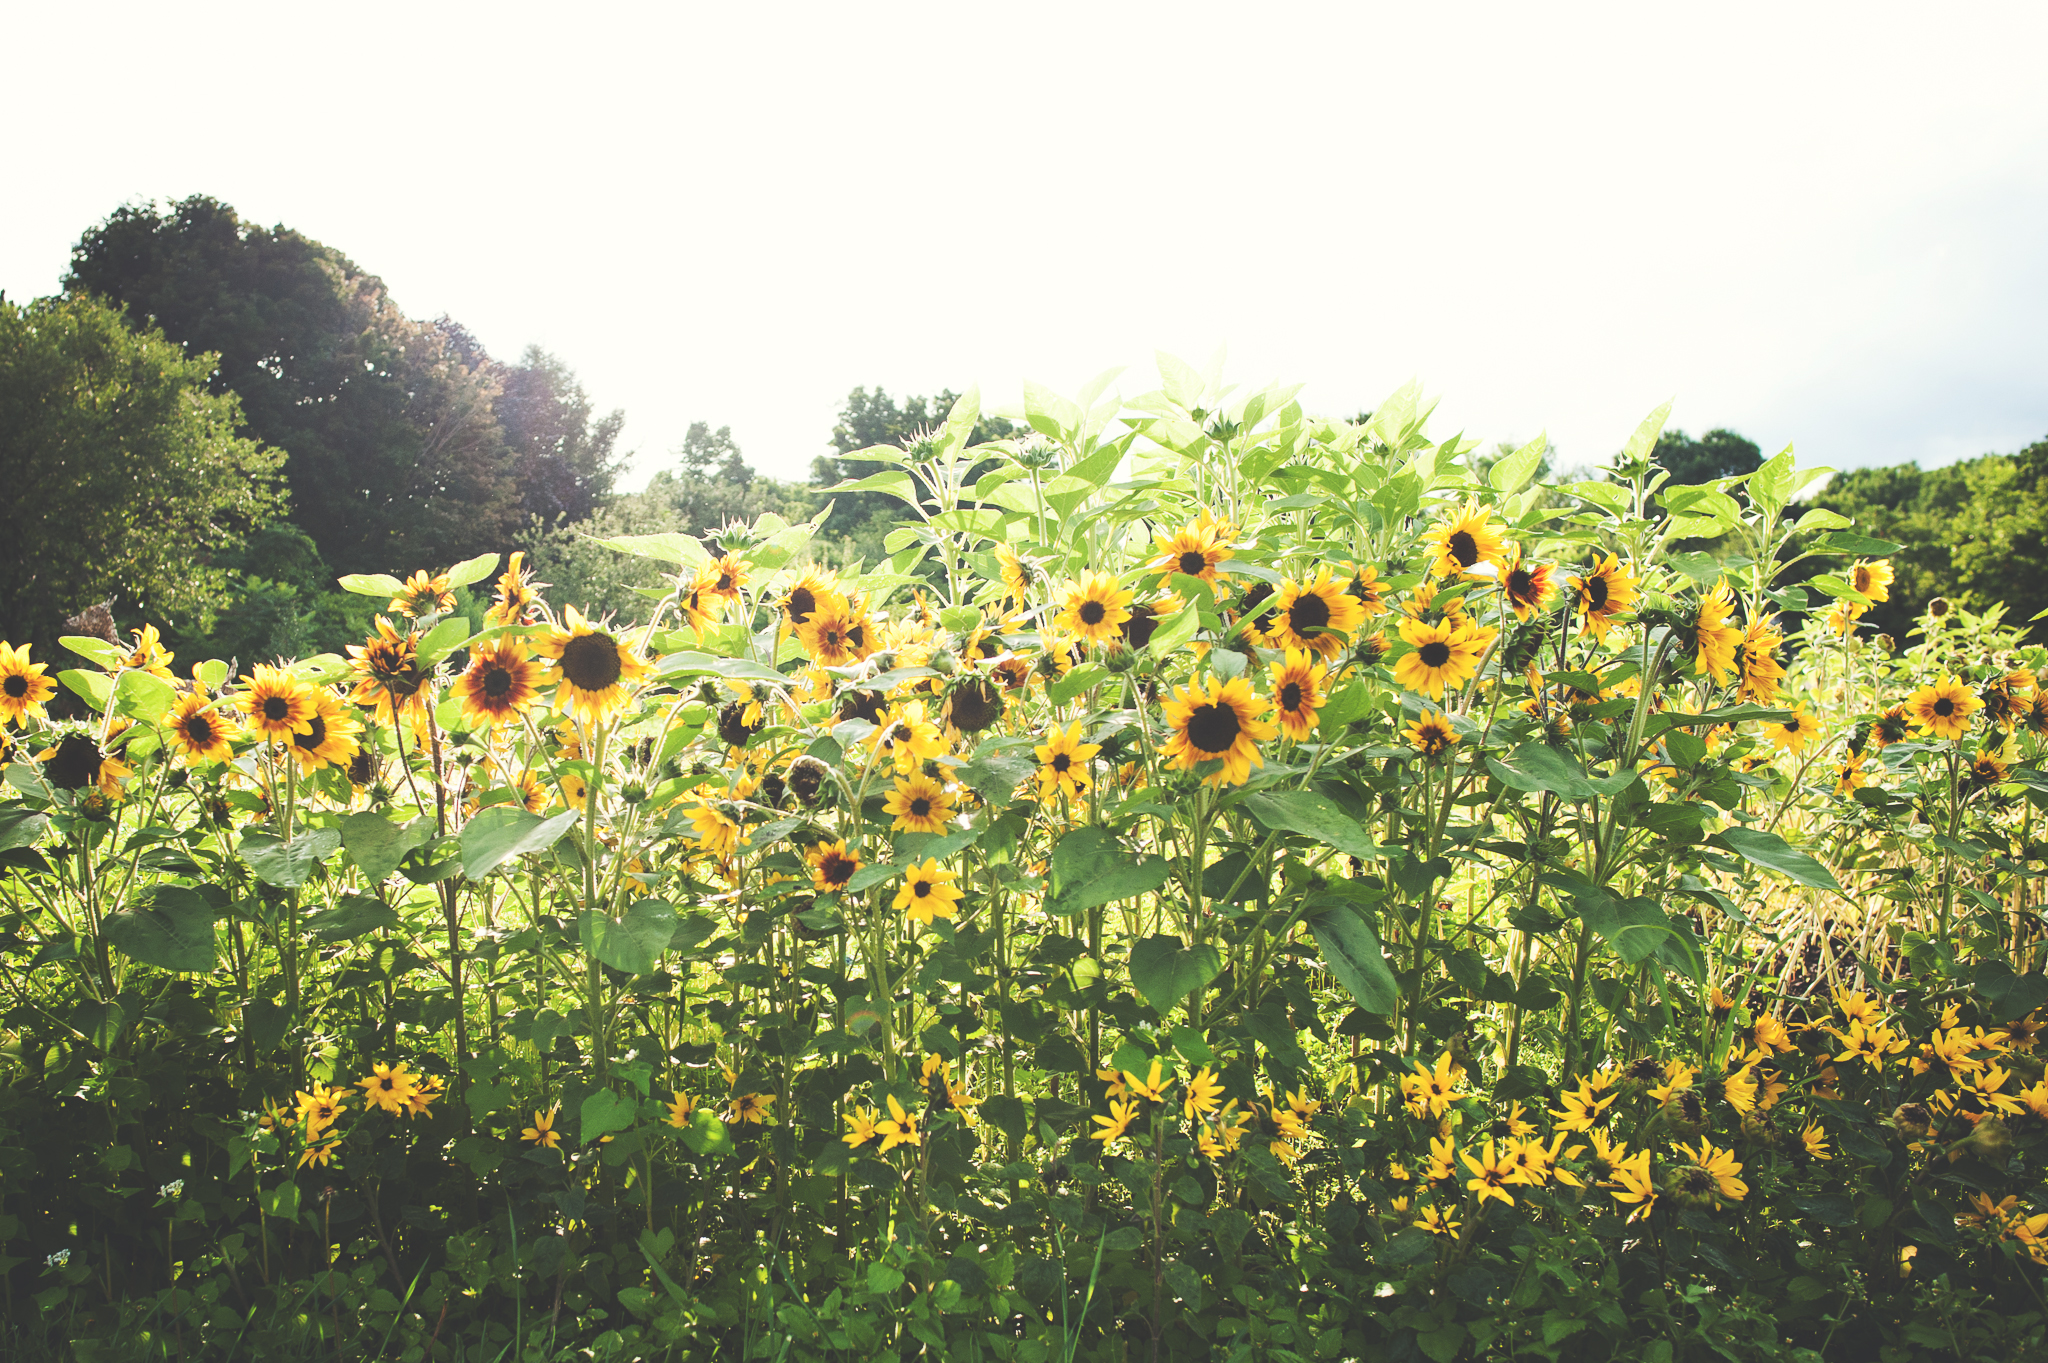 sun-sunflowers-flowers-field-montreal-botanical-garden-photographer-lifestyle-alex-tran